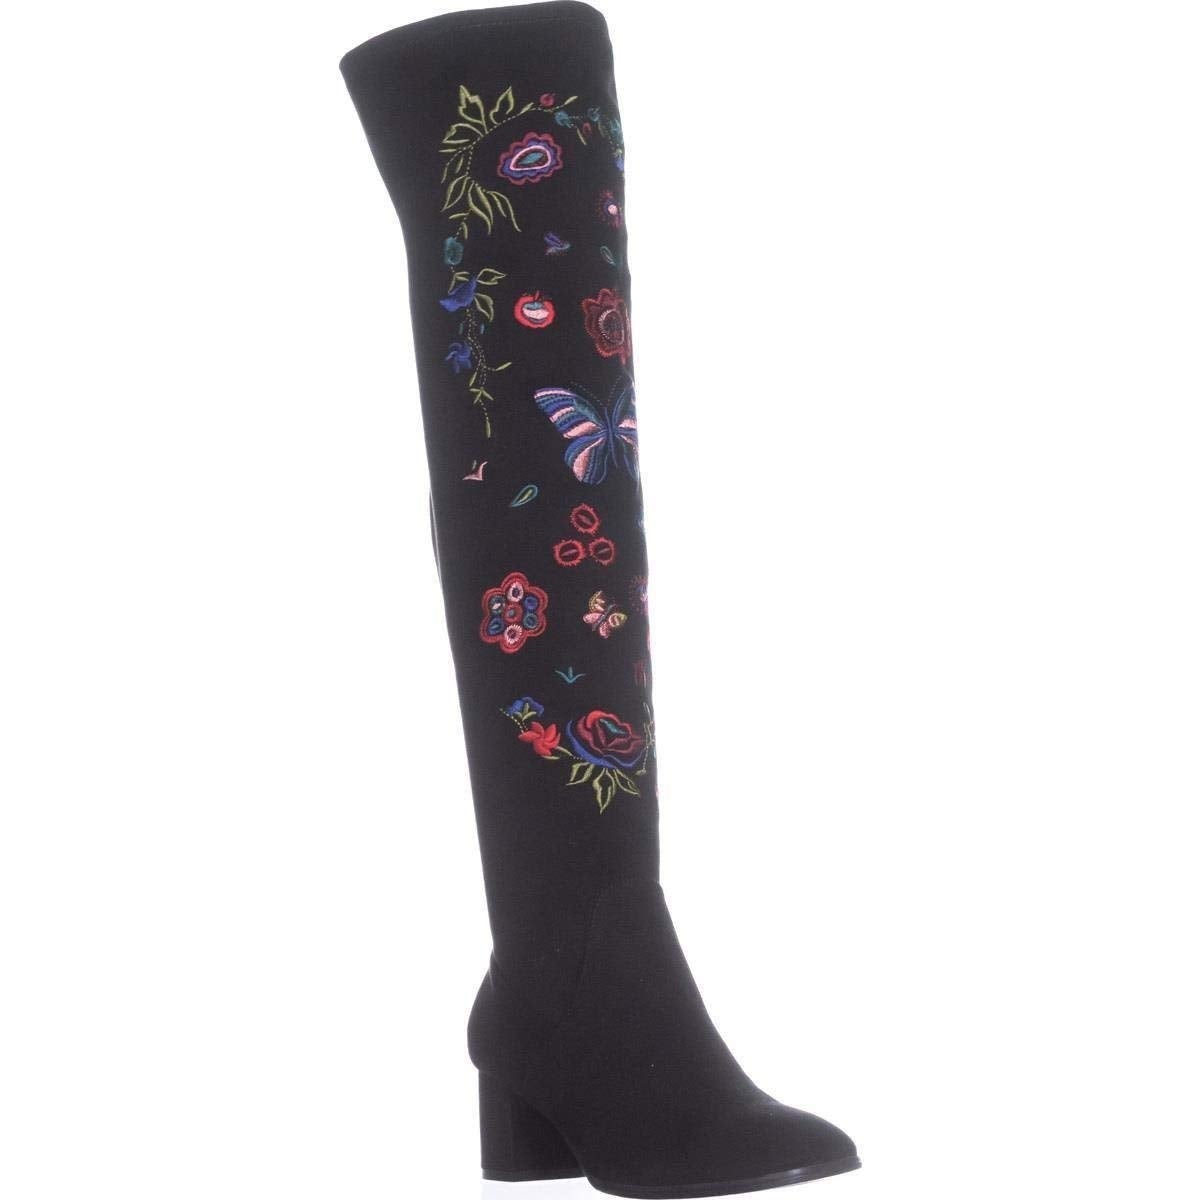 8e3d105e22e7 Shop Impo Womens Judy Closed Toe Knee High Fashion Boots - On Sale - Free  Shipping On Orders Over  45 - Overstock.com - 24071996